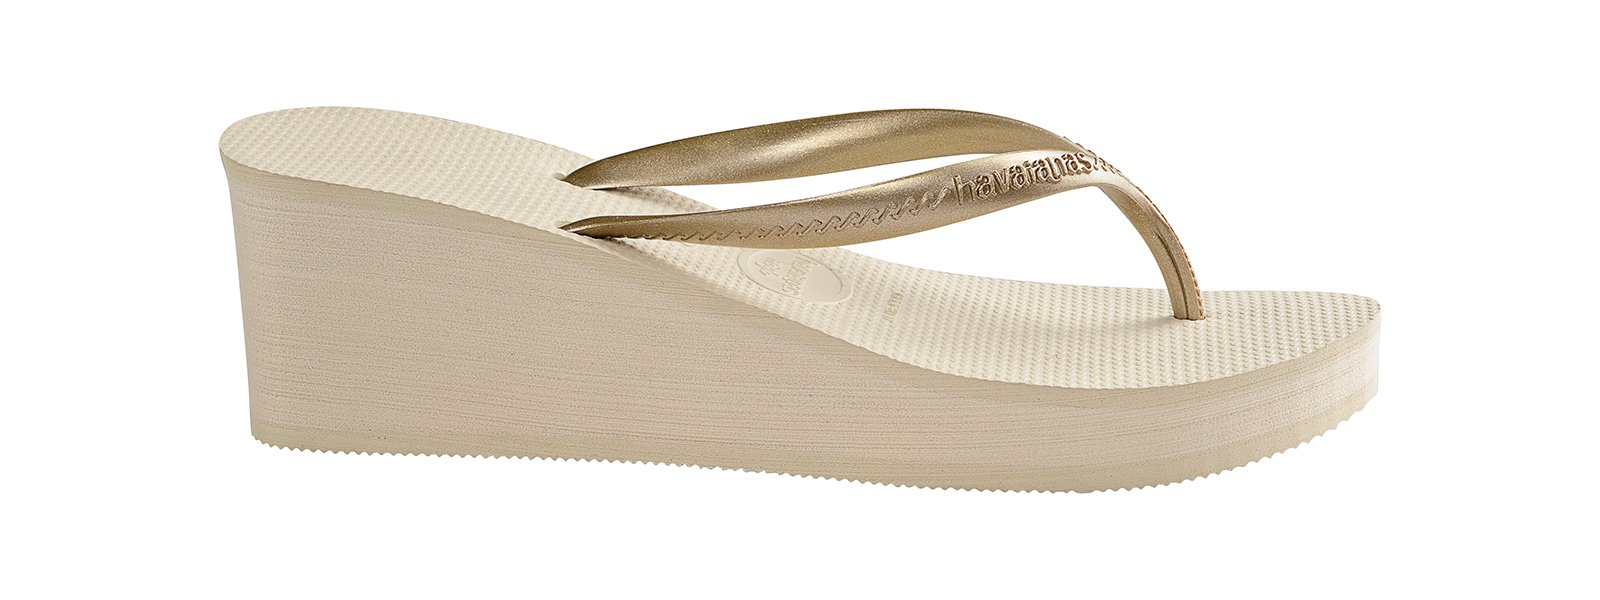 e81ab544ec4 ... Beige flip-flops with wedge heels and gold effect straps - High Fashion  Beige ...